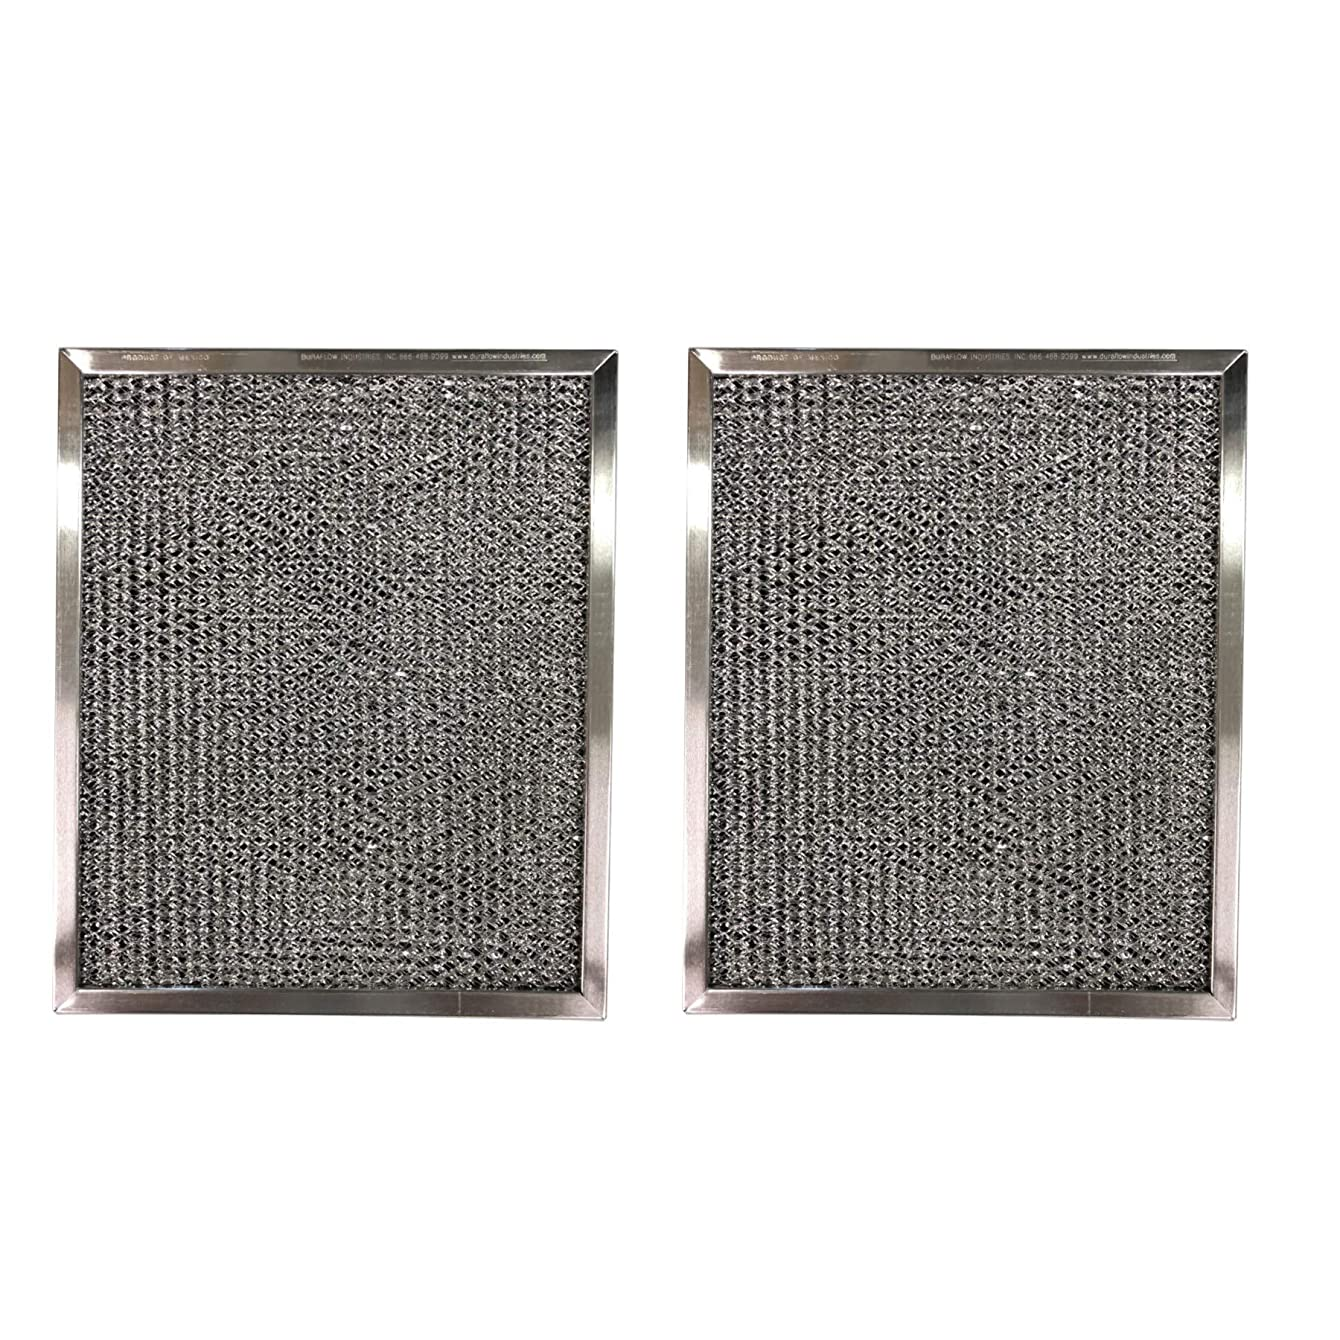 Aluminum Replacement Range Filter Compatible With Nutone K079000, K079-000- Dimensions: 8 x 11 x 3/8-2 Pack